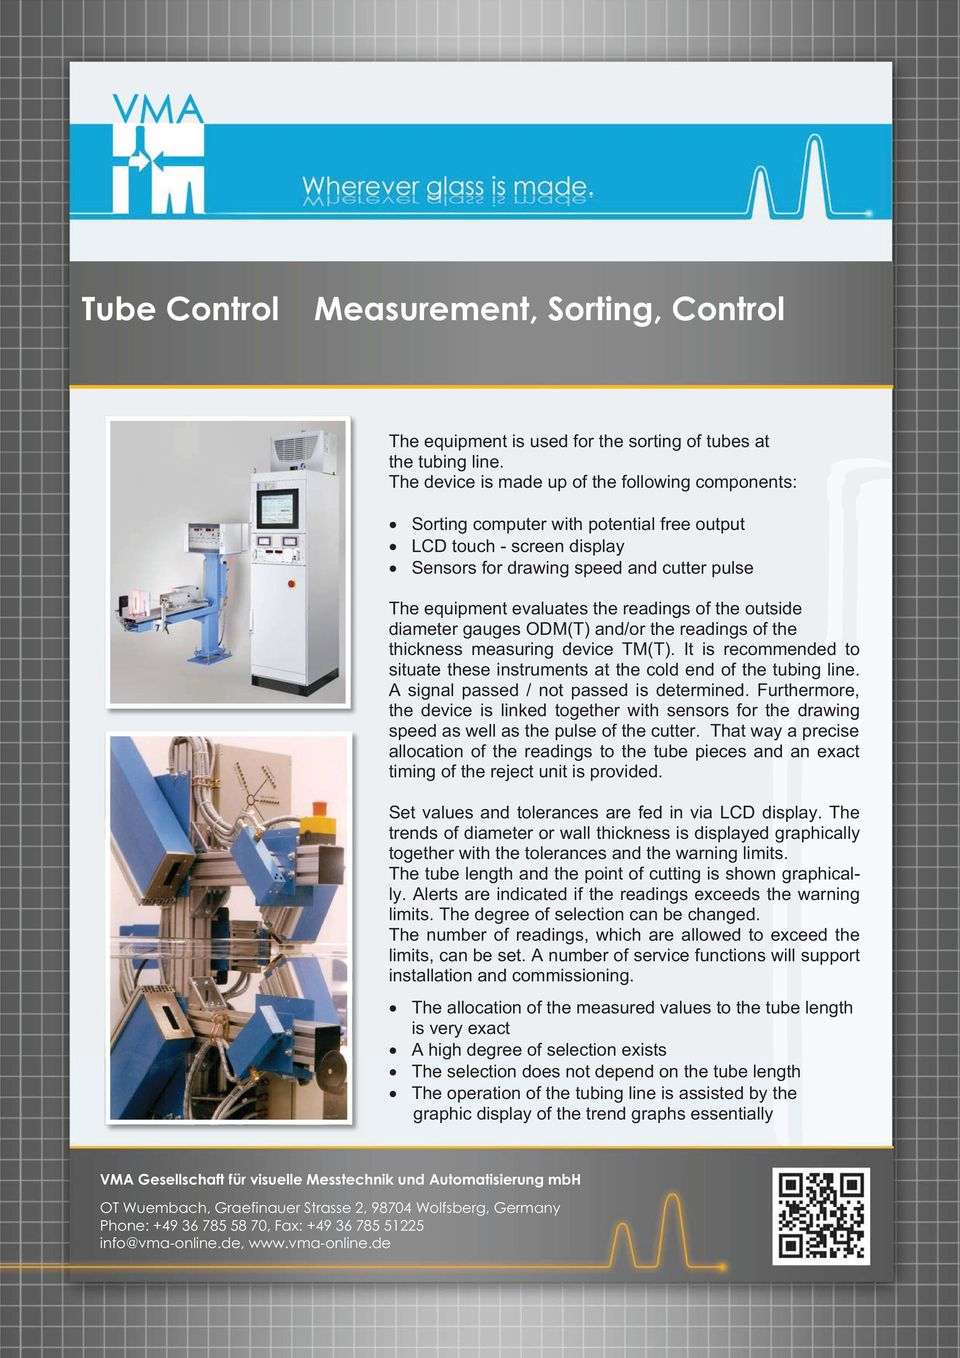 readings of the outside diameter gauges ODM(T) and/or the readings of the thickness measuring device TM(T). It is recommended to situate these instruments at the cold end of the tubing line.